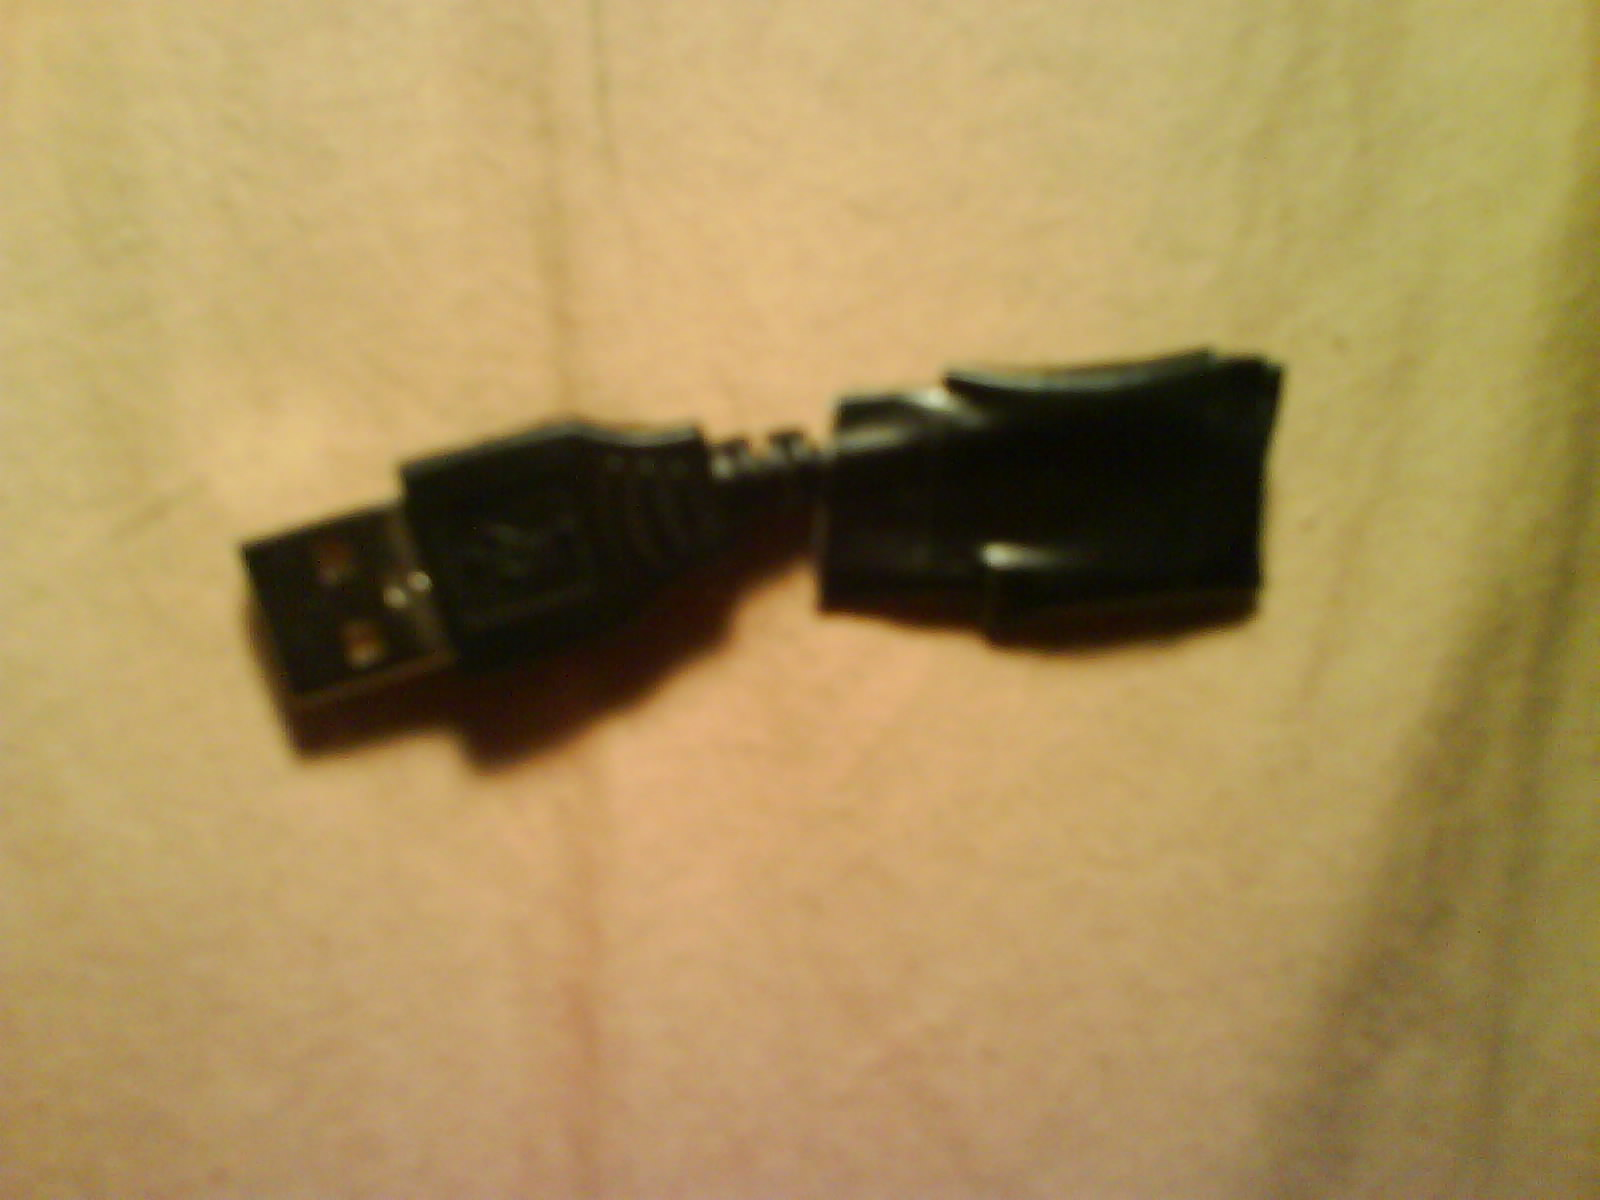 How to make a instant computer crashing usb